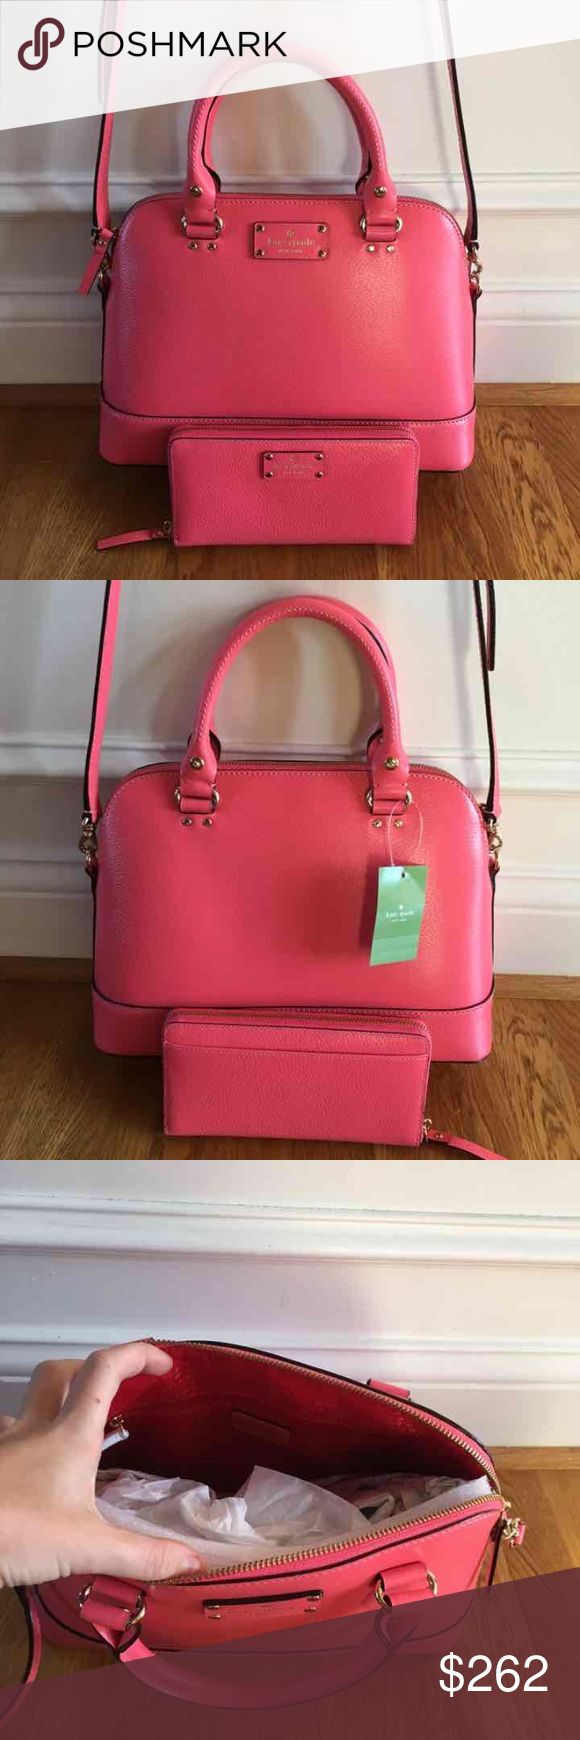 ❗️BUNDLE SALE❗️$486 Kate Sapde New with tags $328 Kate Spade small Rachelle wellesley crossbody in flamingo// brand new, perfect condition, never worn before.   New with tags $158 Kate Spade neda Wellesley wallet in flamingo/ brand new, perfect condition, never worn before. kate spade Bags Crossbody Bags